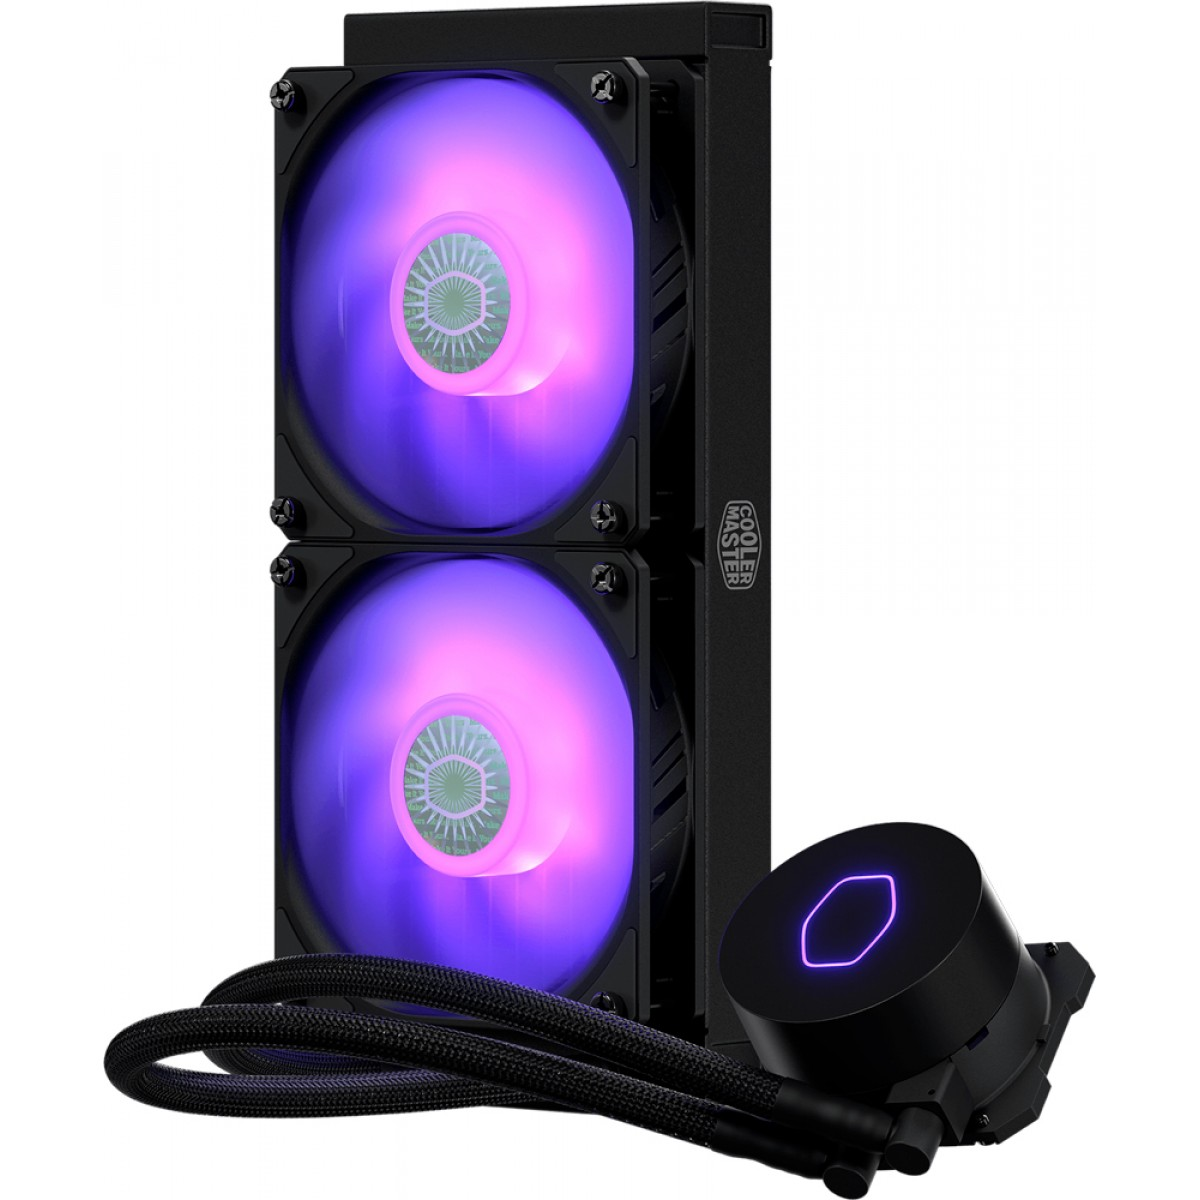 Water Cooler Cooler Master Masterliquid ML240L V2, RGB 240mm, Intel-AMD, MLW-D24M-A18PC-R2